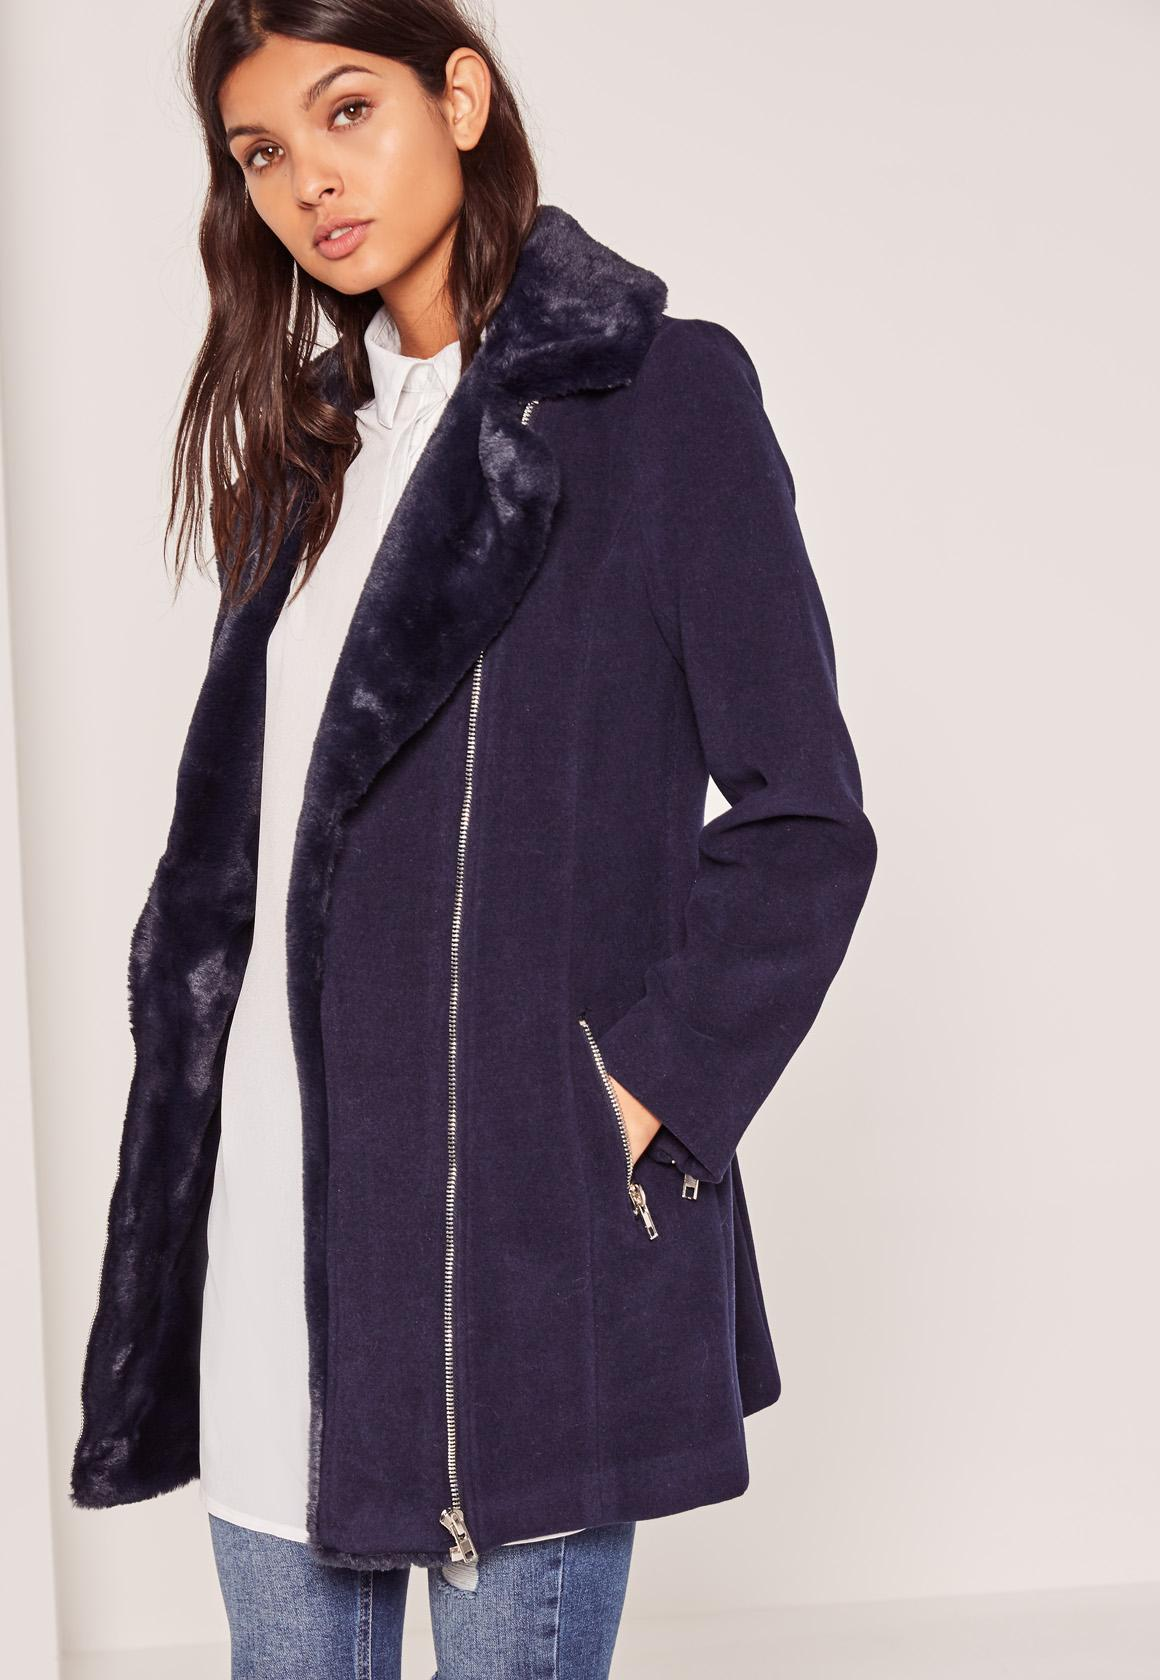 Faux Fur Lined Faux Wool Longline Biker Jacket Navy - Missguided